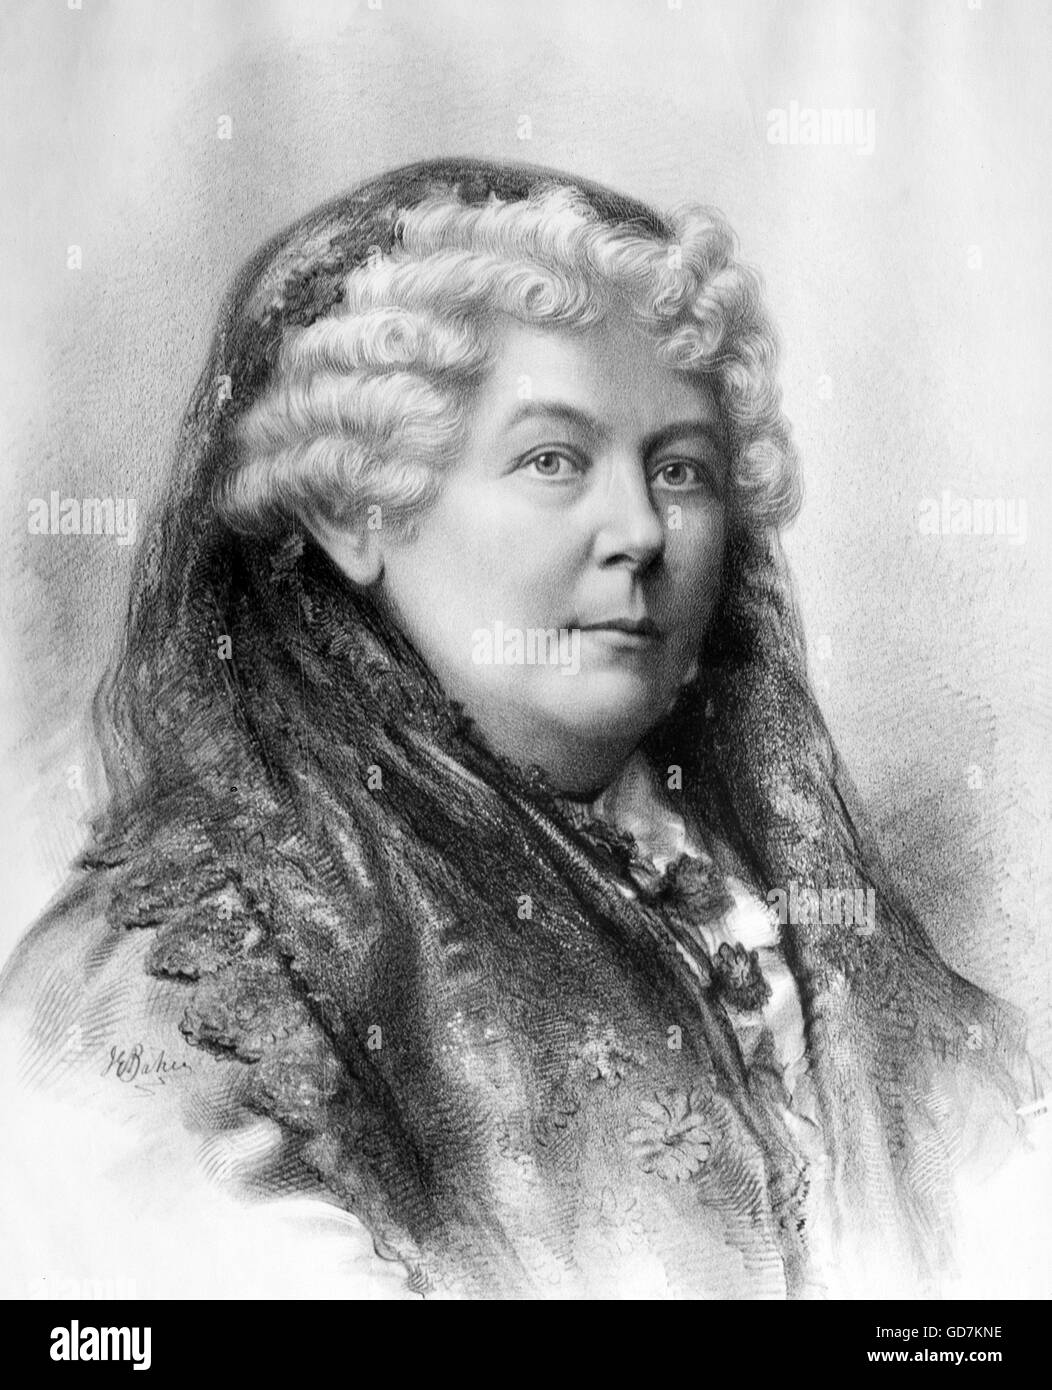 Elizabeth Cady Stanton (1815- 1902), an American suffragist, social activist, abolitionist, and leading figure of - Stock Image